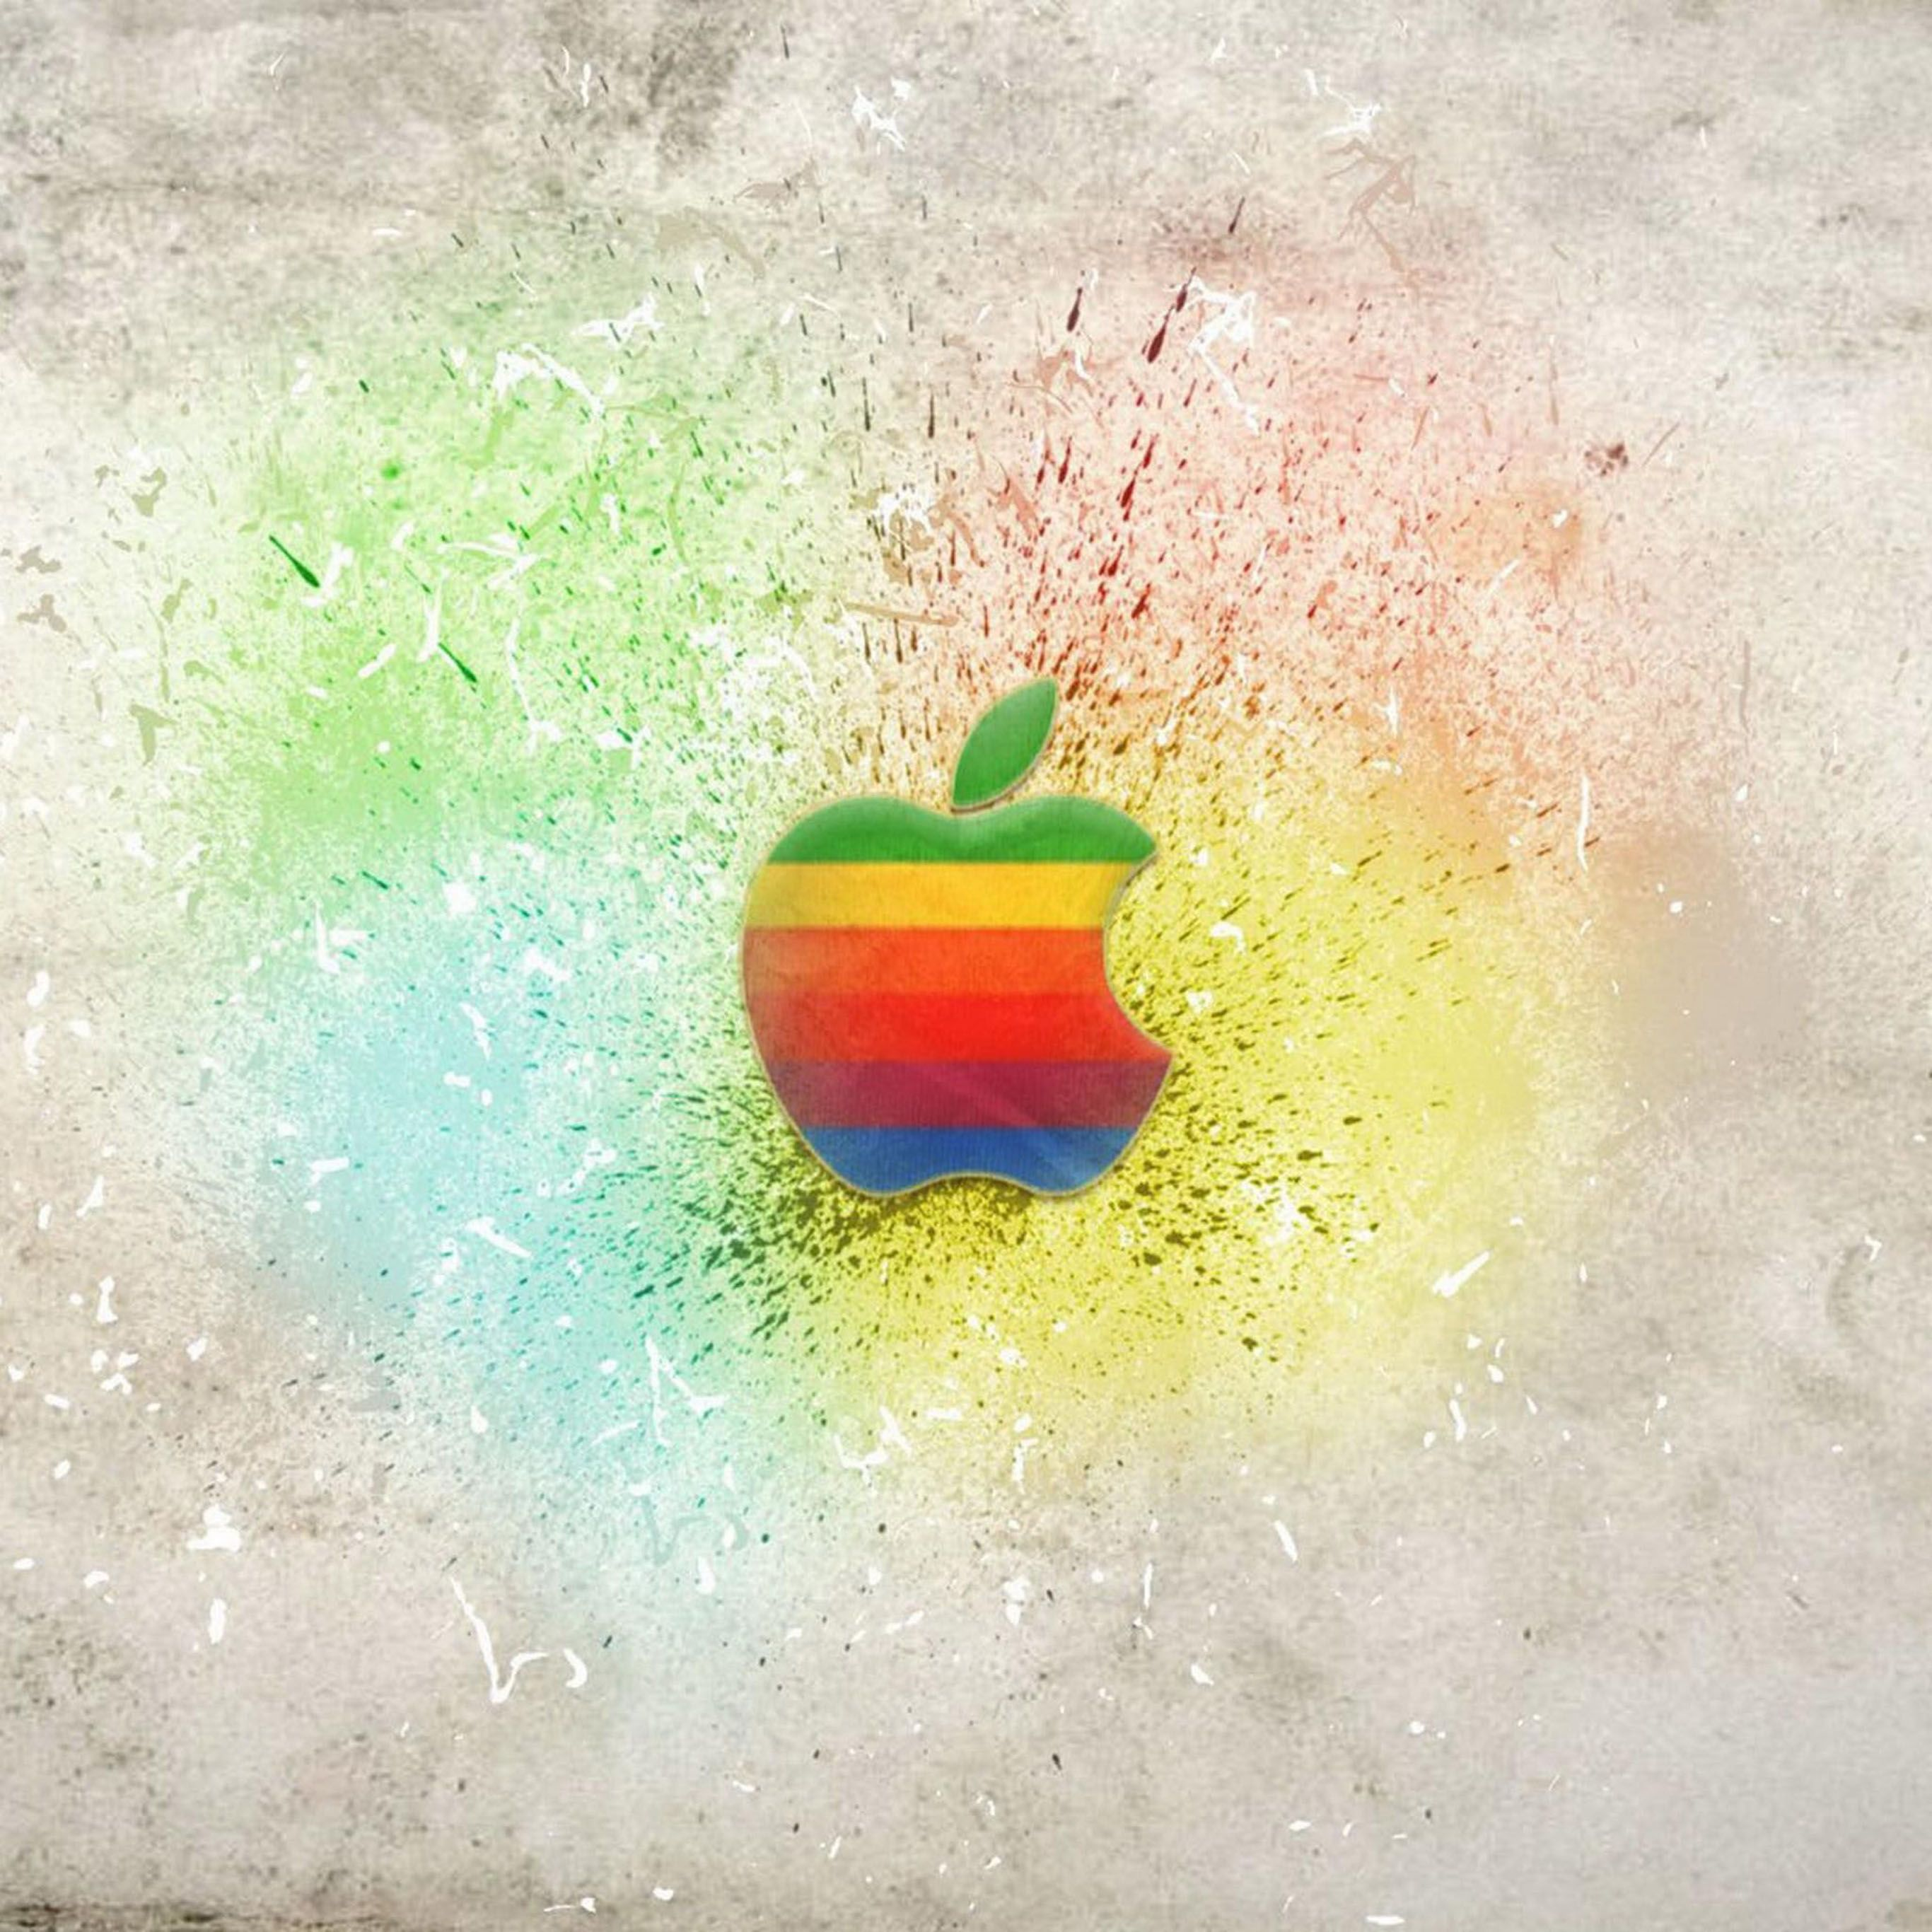 Apple Ipad Pro Wallpaper 26 Ipad Pro Others Wallpaper